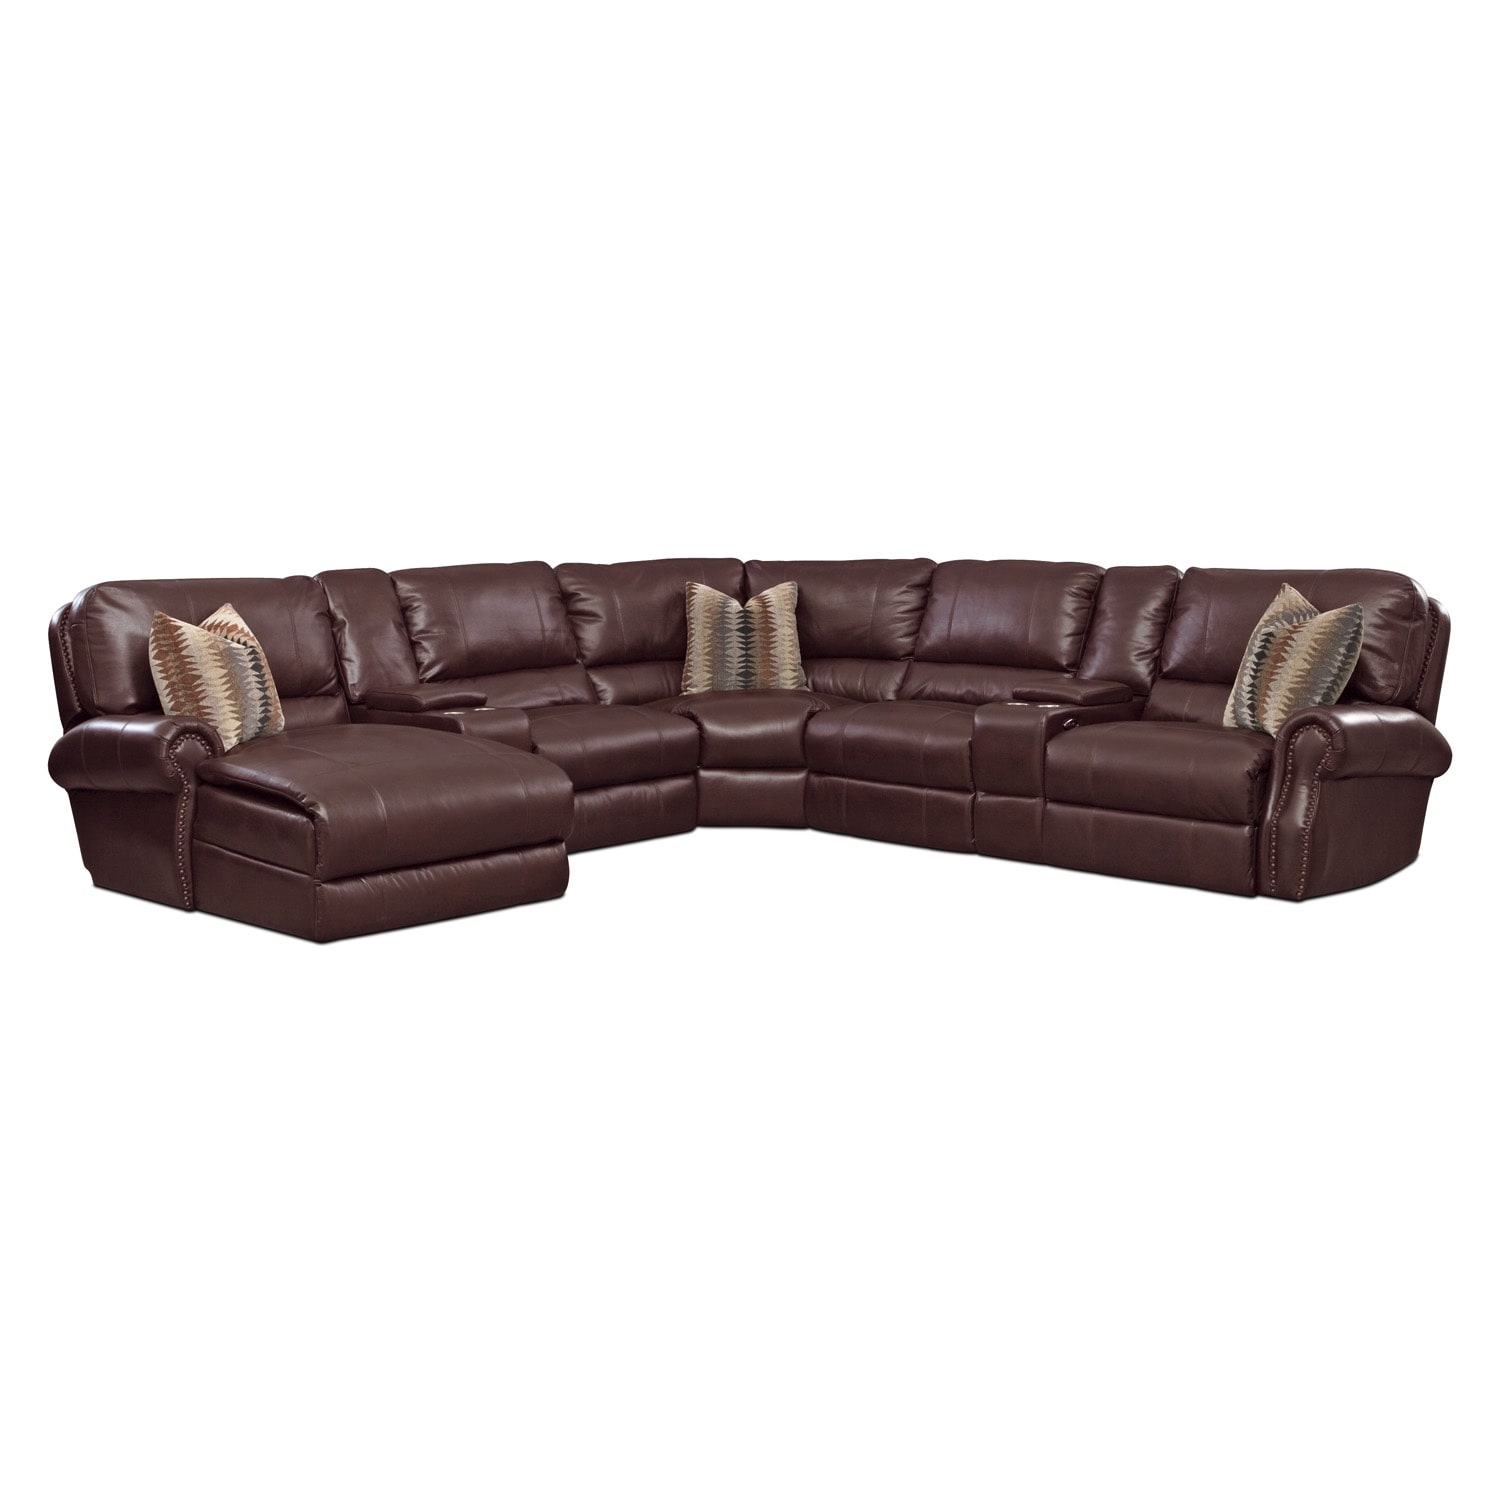 Princeton 5 Pc. Power Reclining Sectional (Reverse)